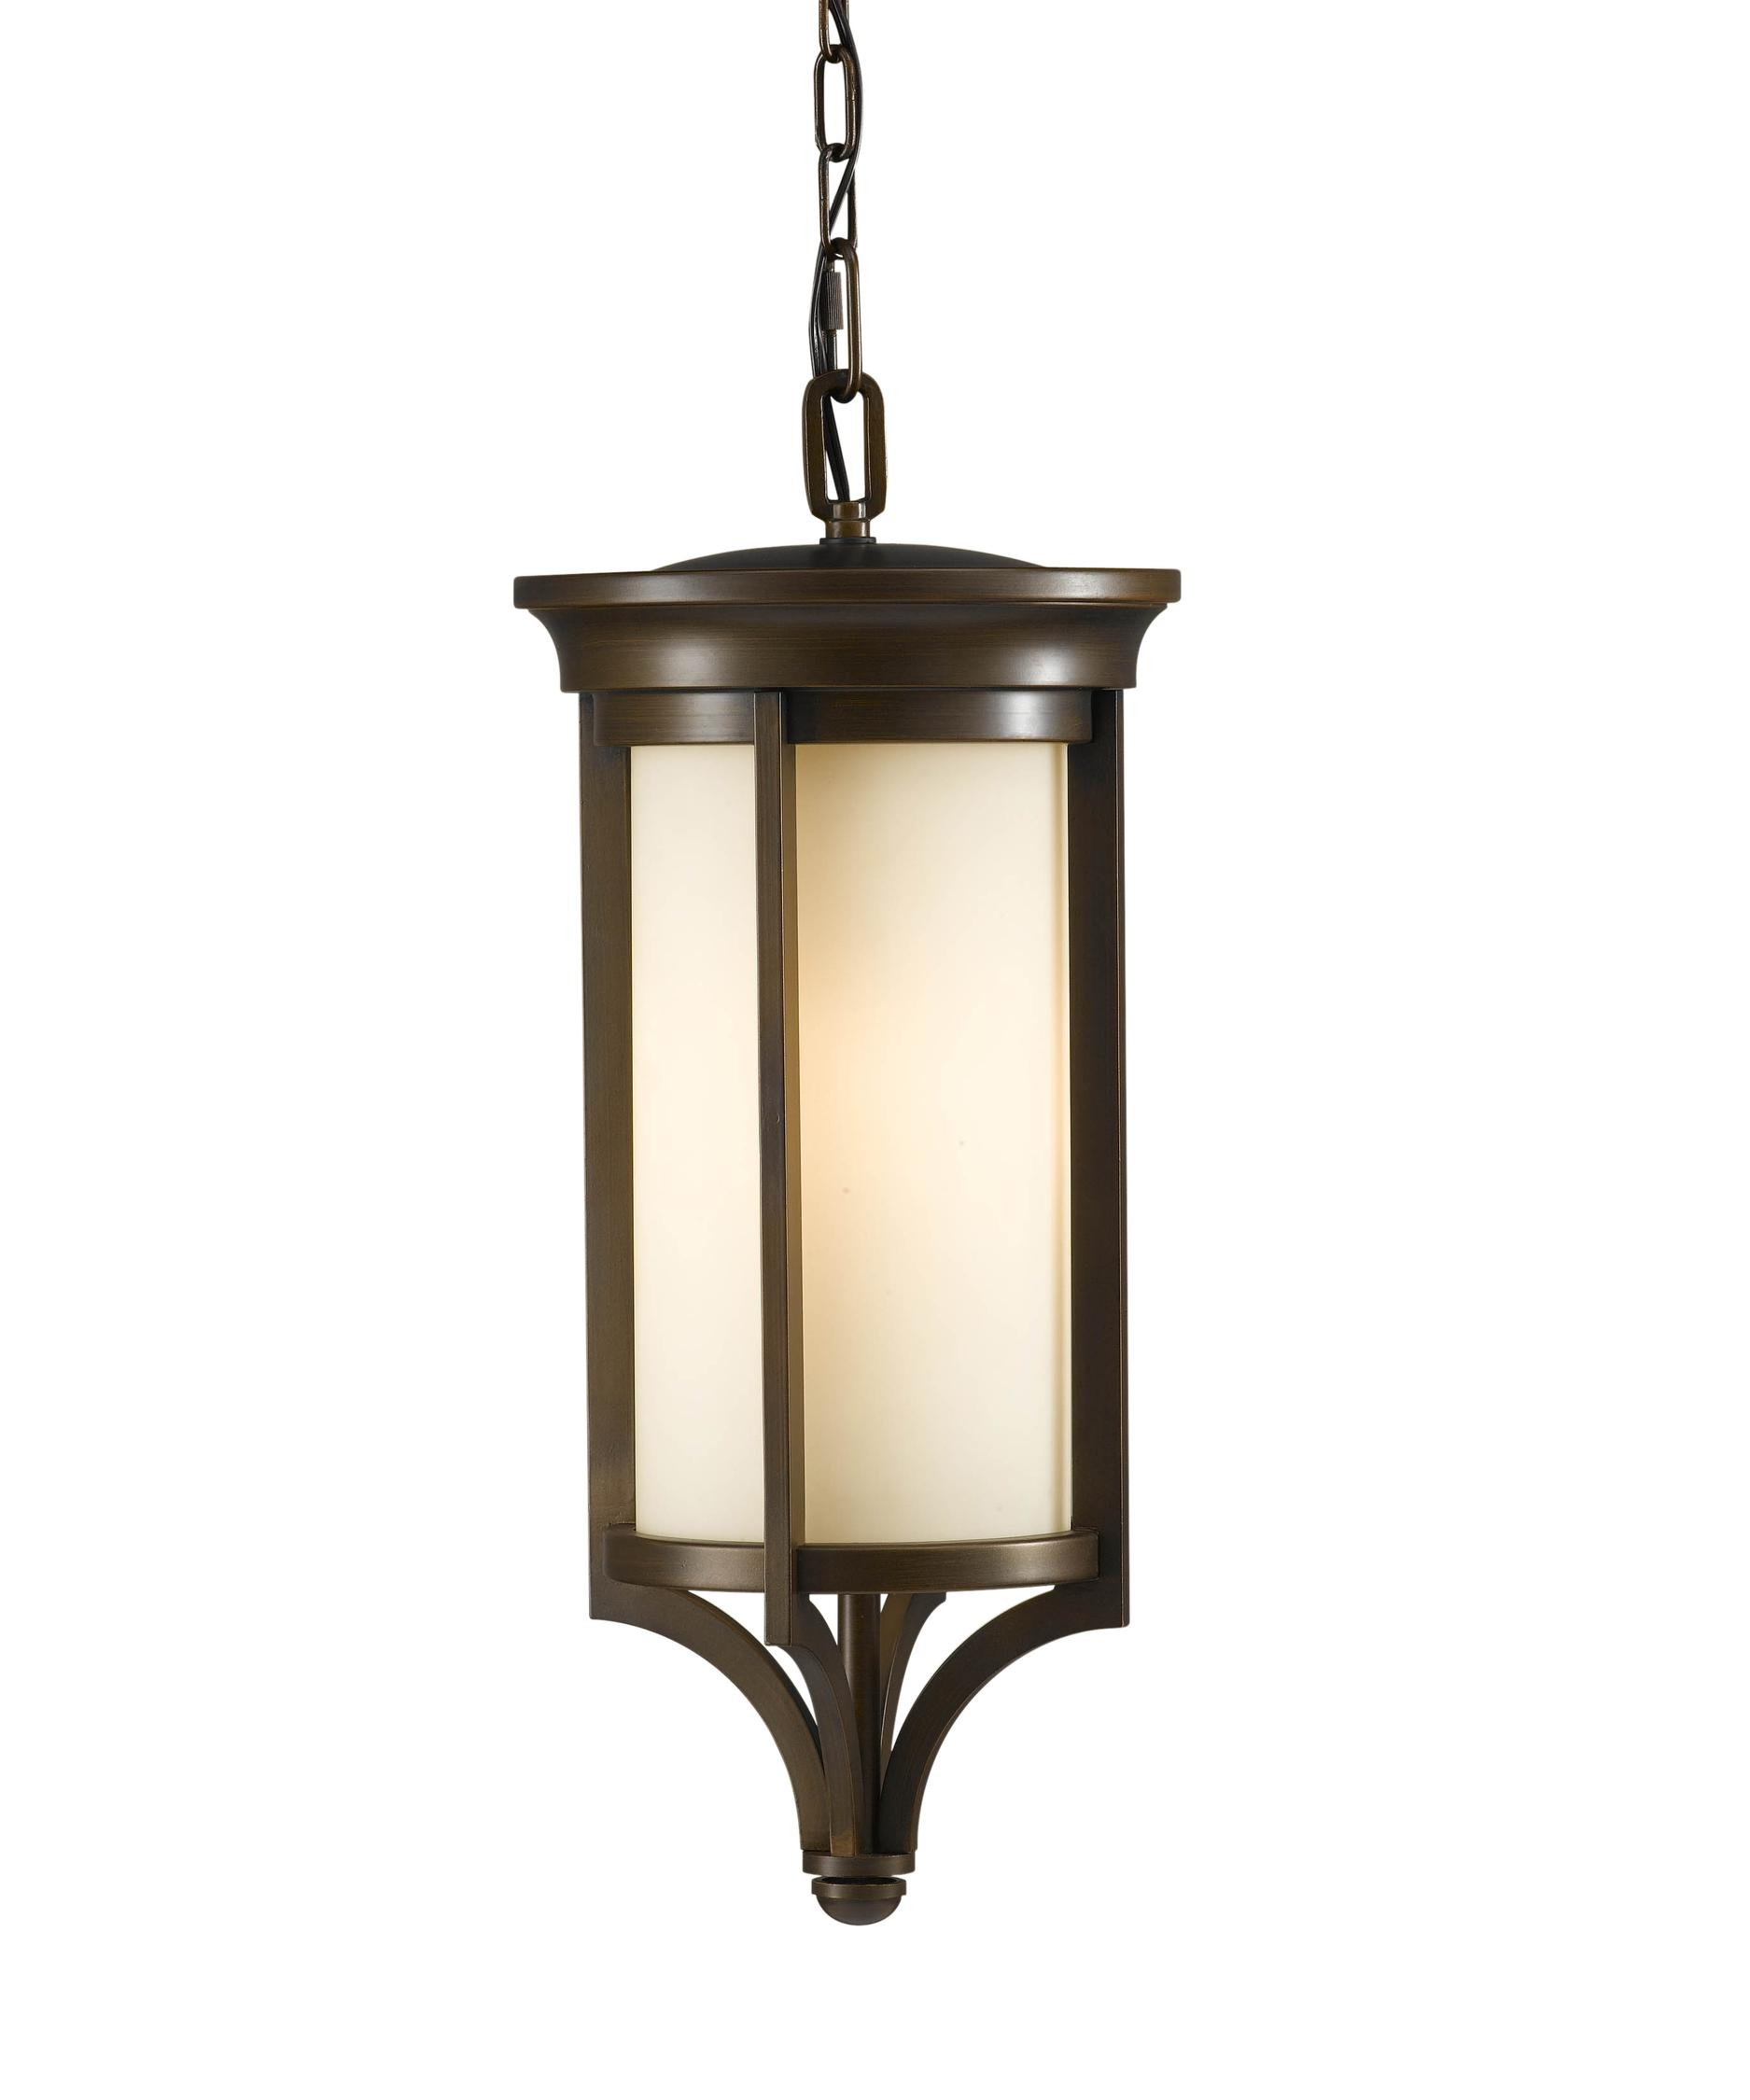 Outdoor hanging lamp - Shown In Heritage Bronze Finish And Cream Etched Glass